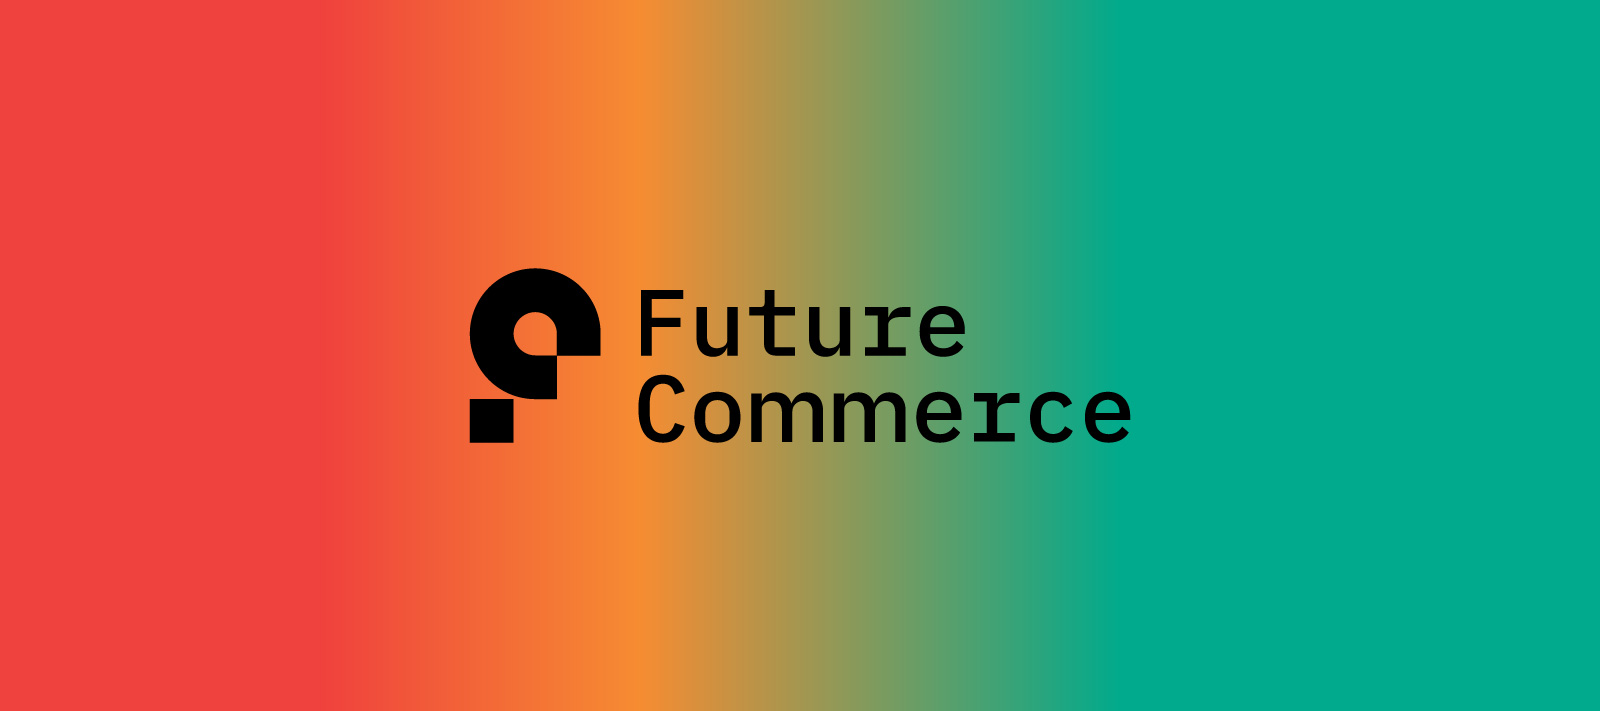 Future Commerce Logo with Gradient Background